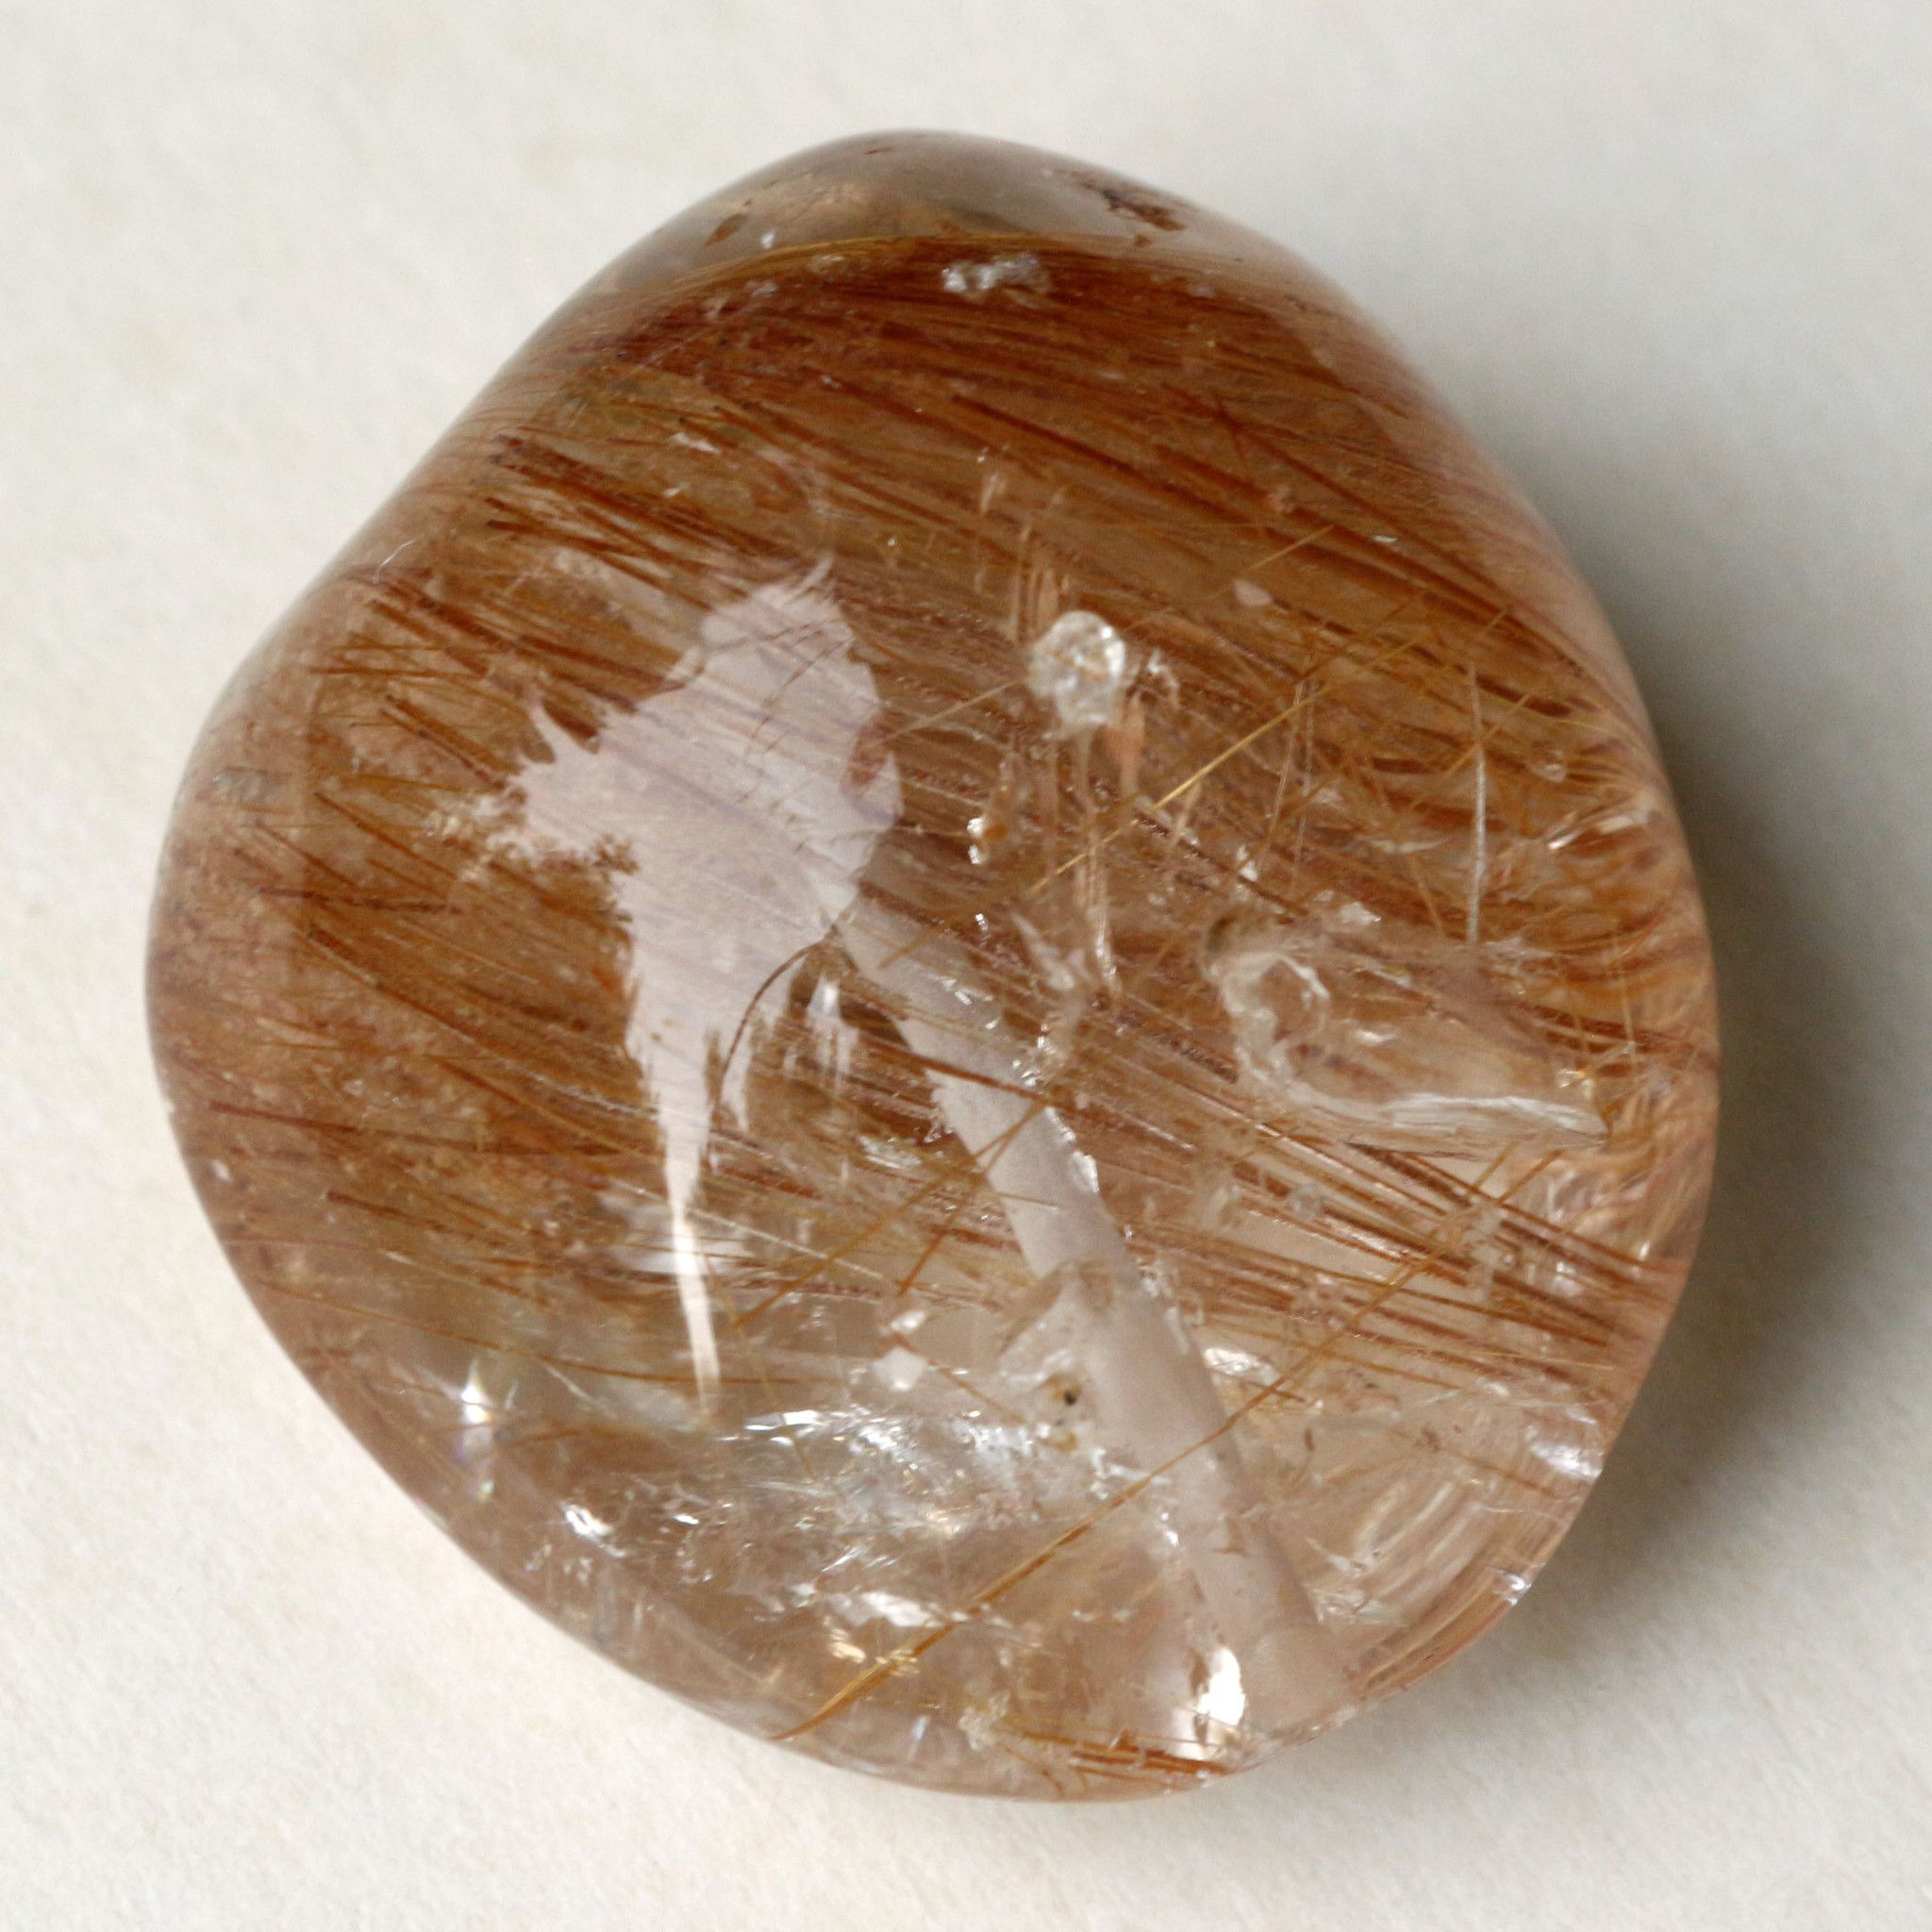 Rutilated Quartz Crystal Tumbled Stone with Copper-like Threads - 149 Carots